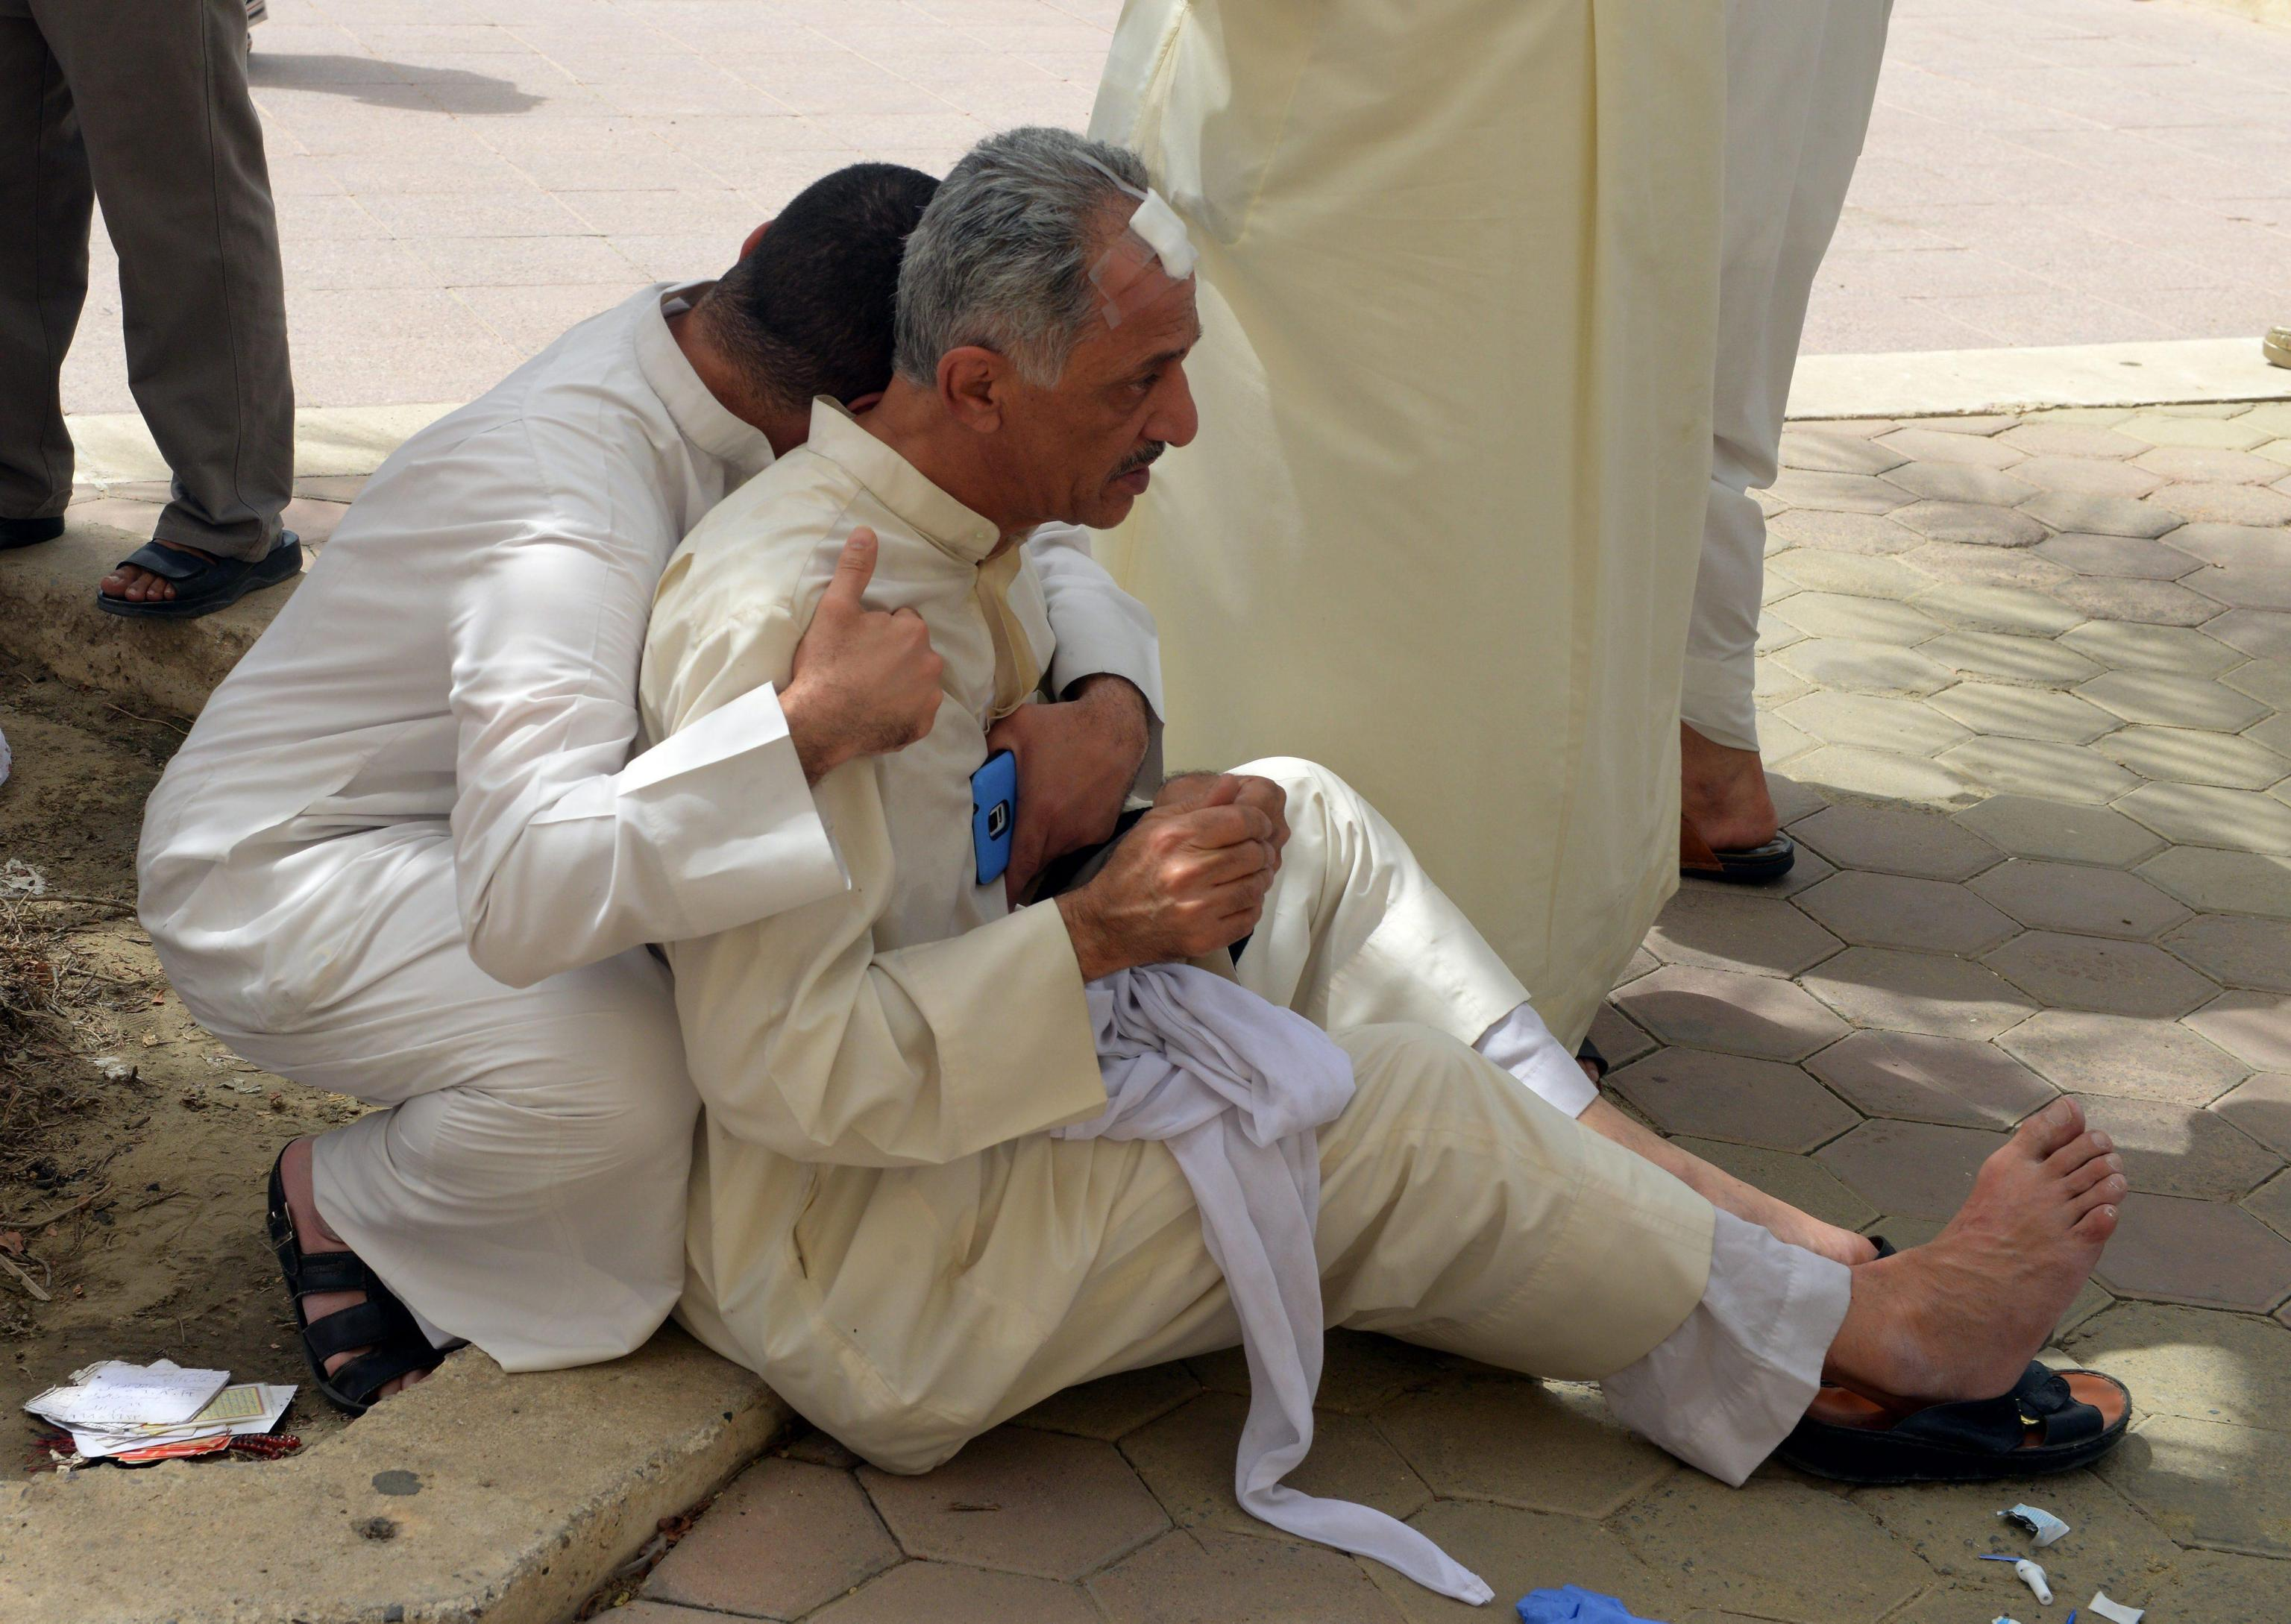 Terror attack against Shiite mosque in Kuwait City